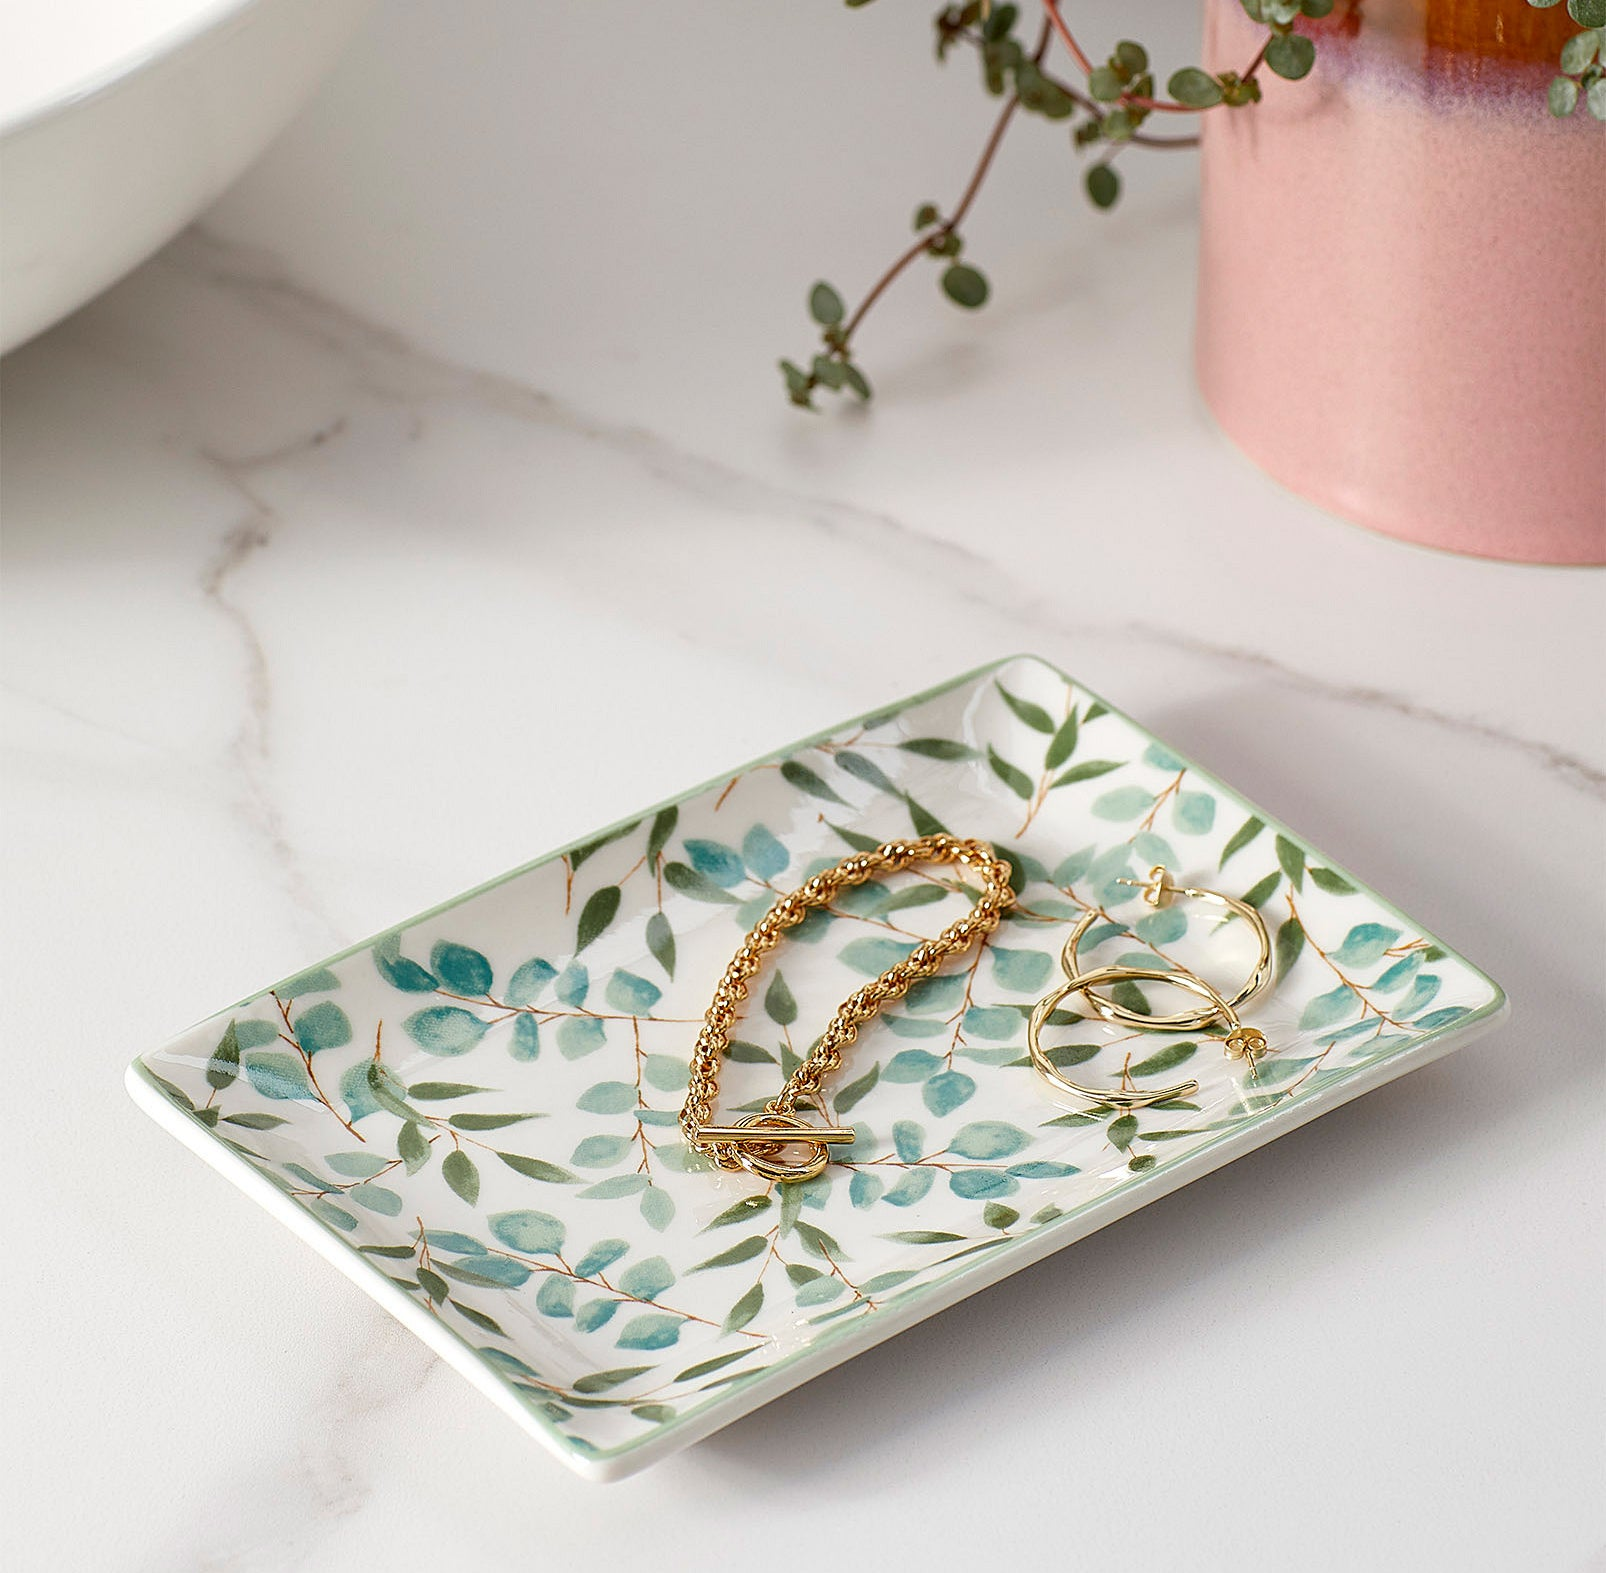 A cute patterned tray with jewelry on it